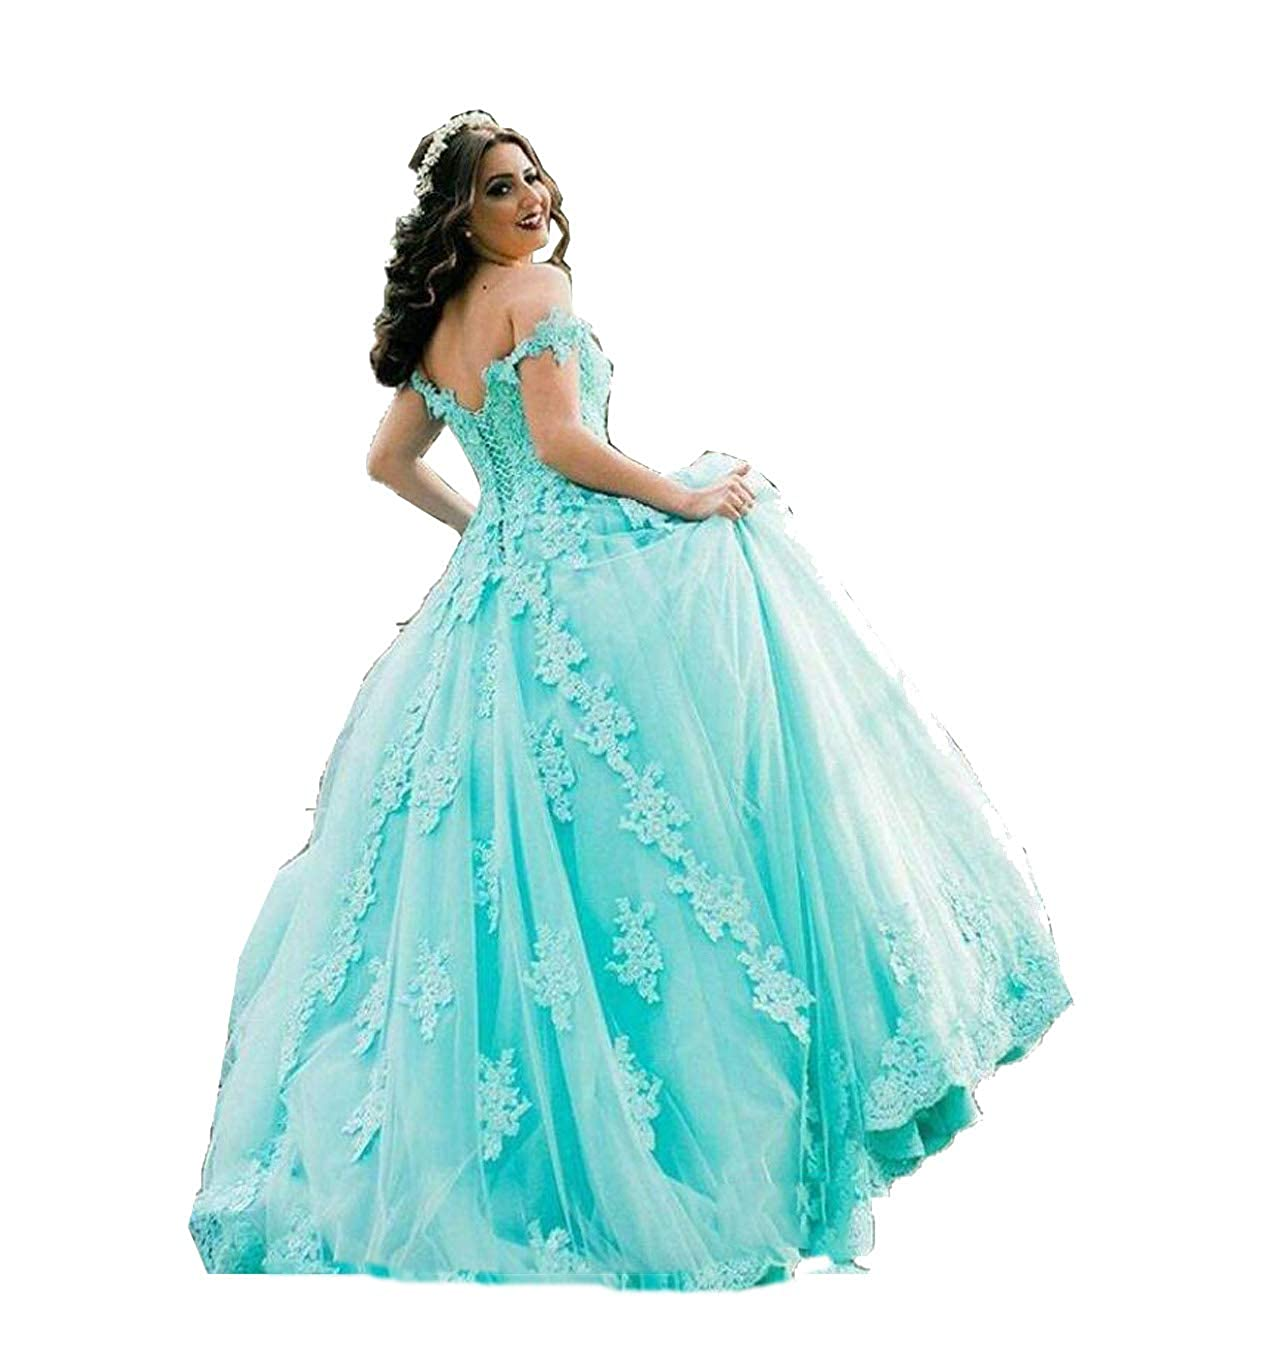 bluee MariRobe Women's Lace Applique Quinceanera Dress Off The Shoulder Prom Dress Backless Wedding Dress Sweet 16 Dress Prom Gown